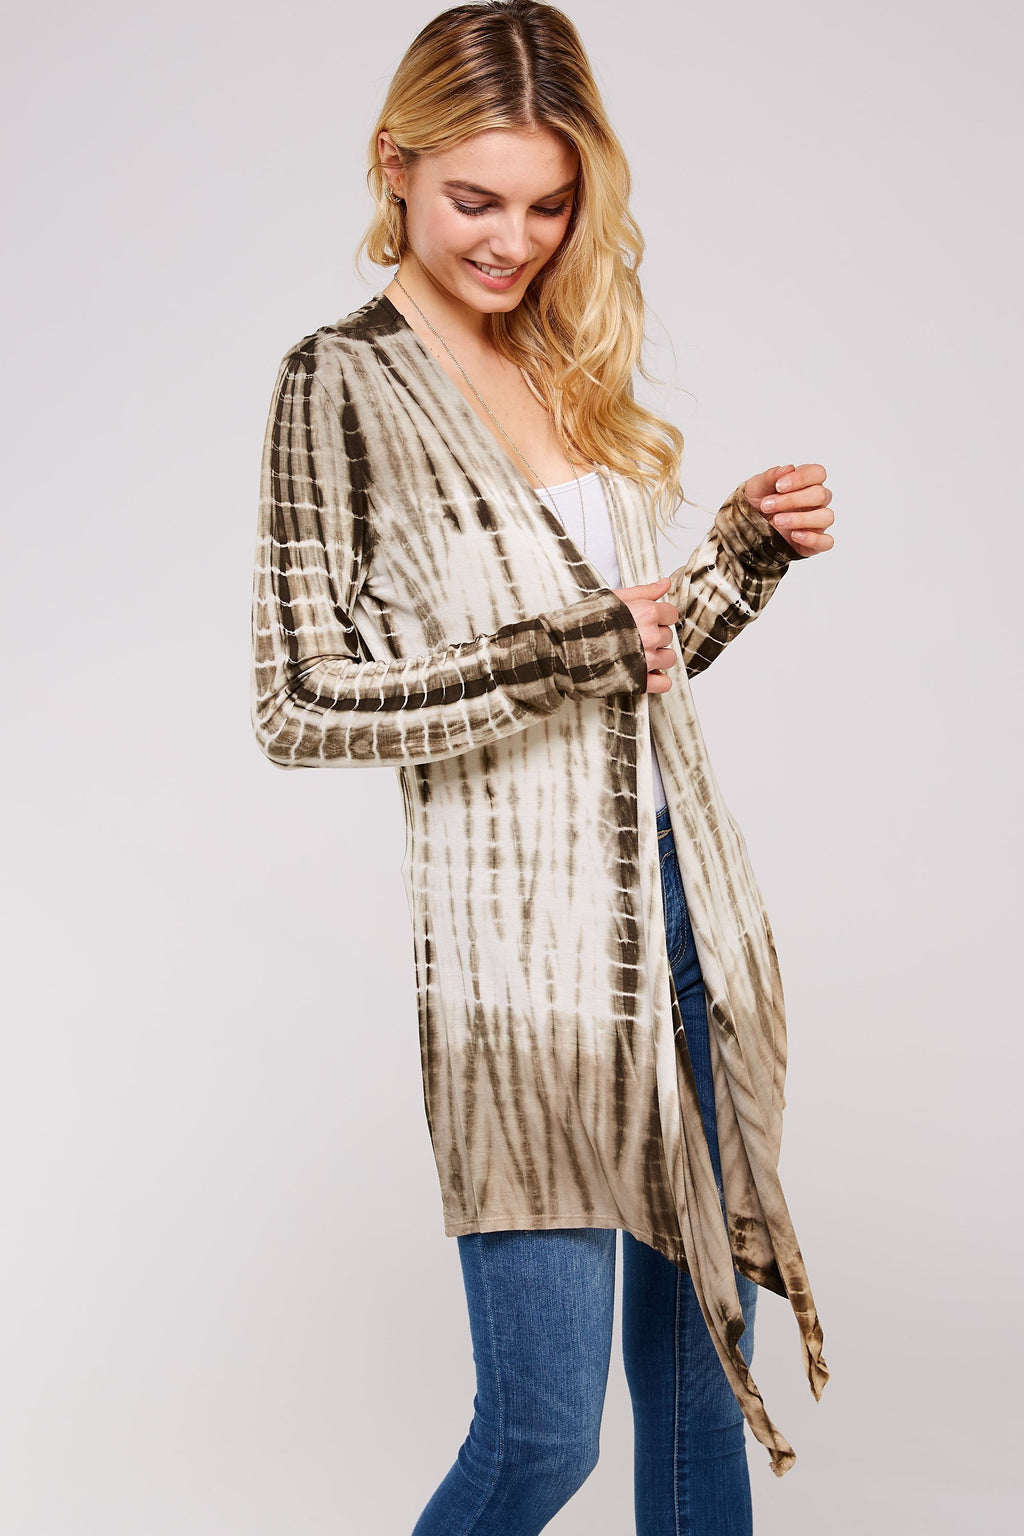 Wholesale Clothing, Online Wholesale Clothing, Women Clothing, Bohemian, Free People, tiedye, specialty wash, wholesale seller, wholesale women clothing shop, gypsy look, USA made, URBAN X APPAREL-CARDIGANS-UCR3171, fashiontrend2019